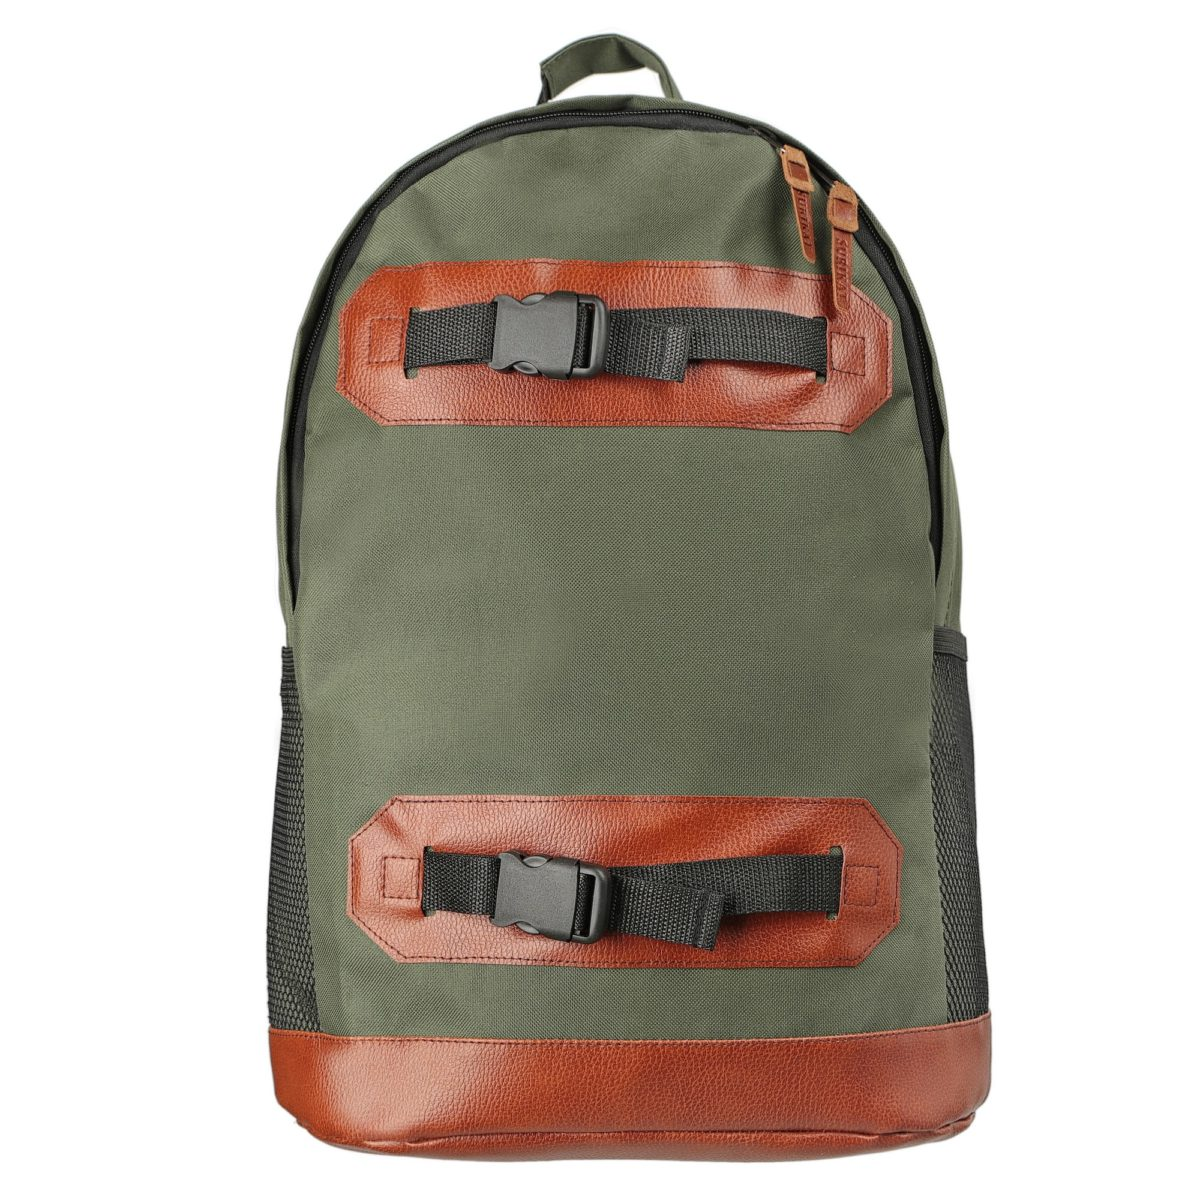 Рюкзак Candy Backpack Haki-3